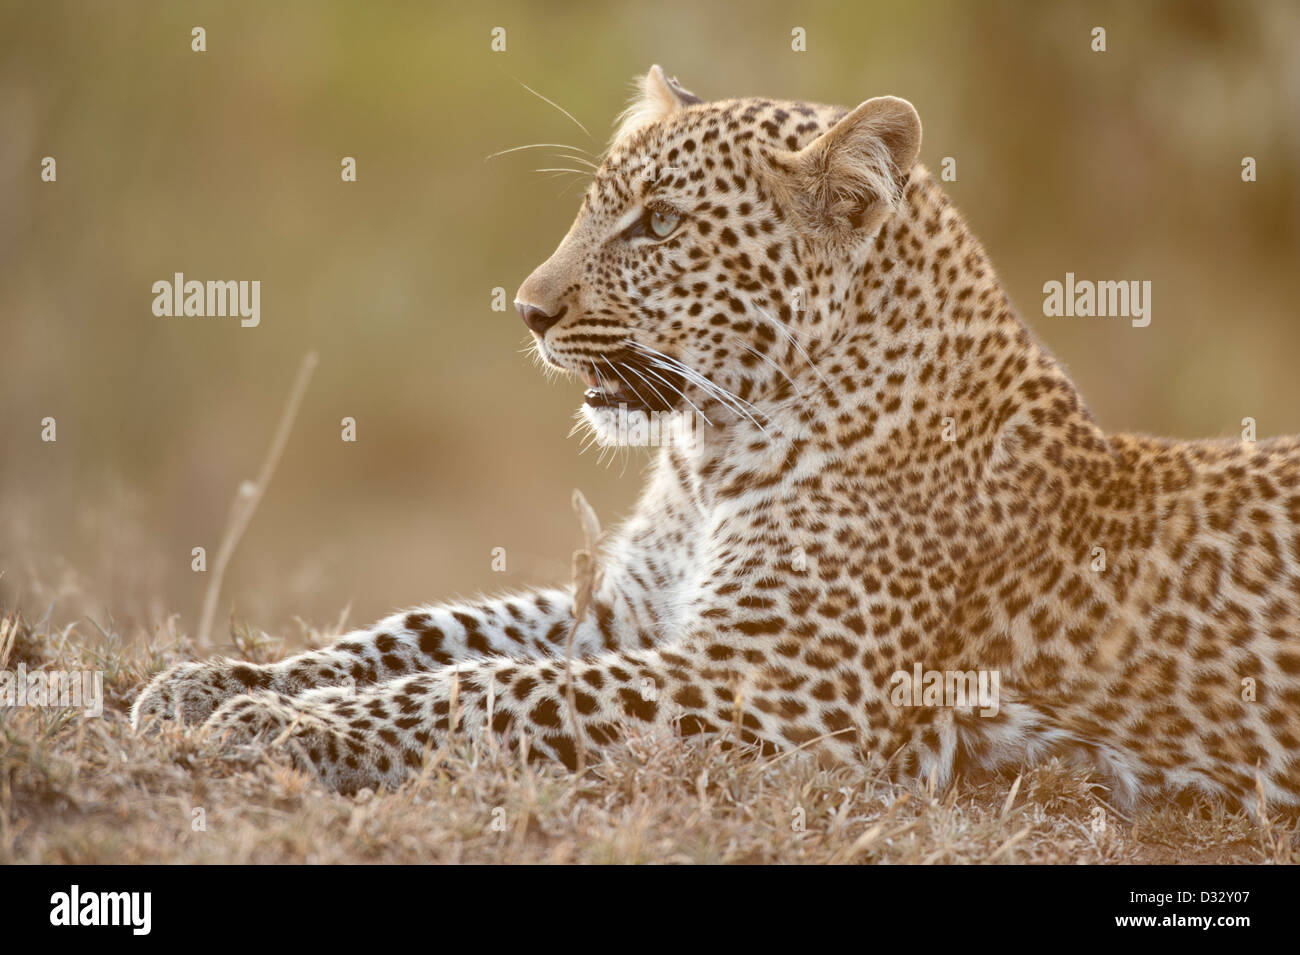 Leopard (Panthera pardus), Maasai Mara National Reserve, Kenya Stock Photo